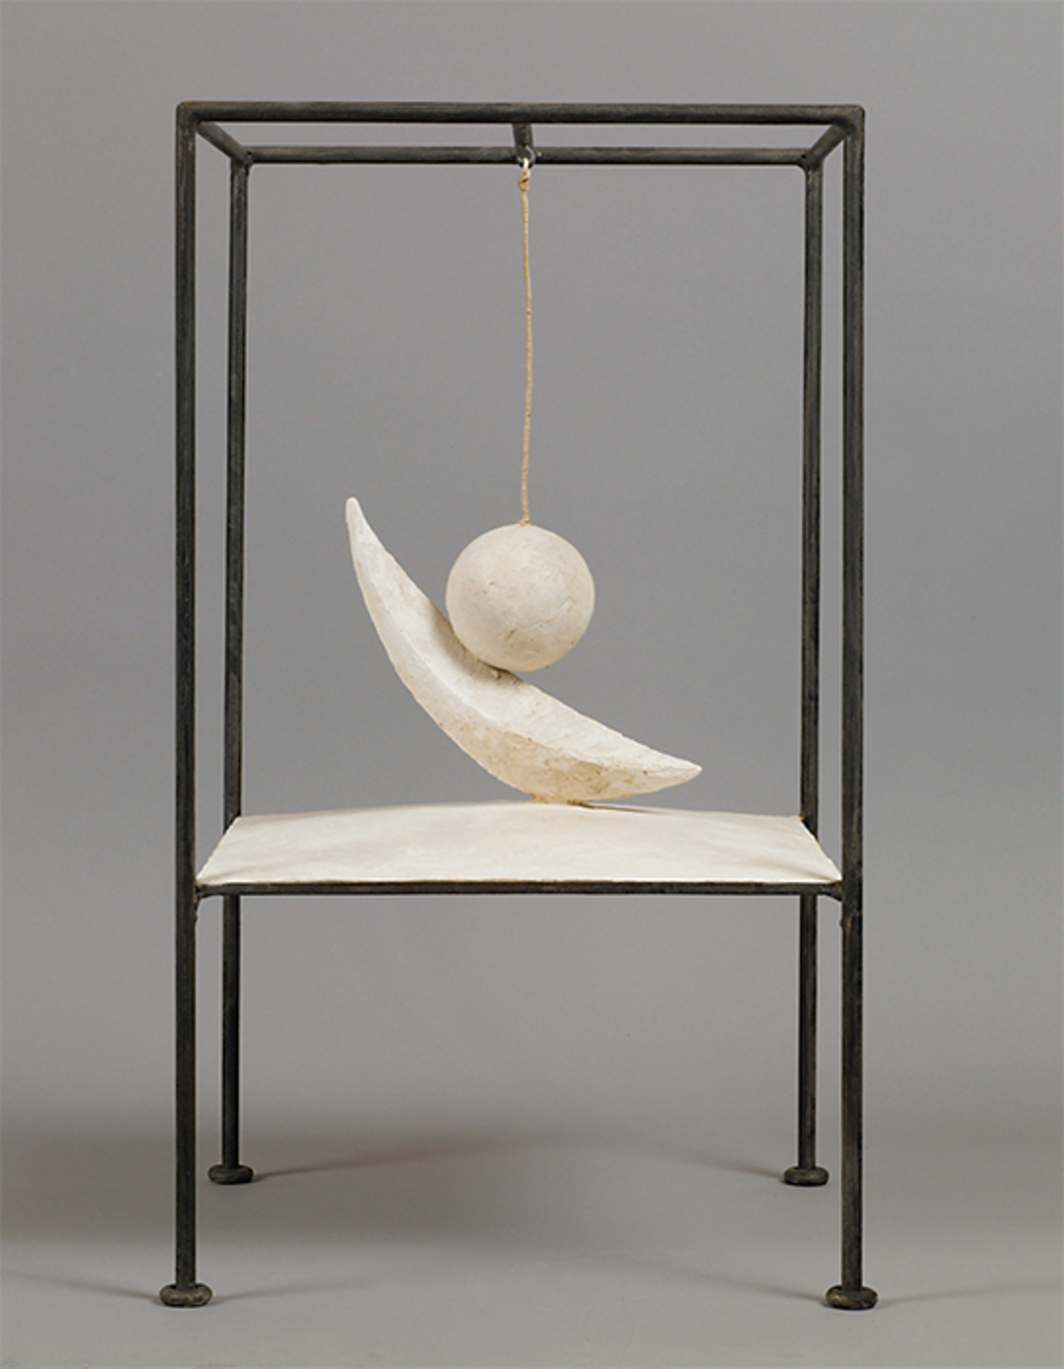 "Alberto Giacometti, Suspended Ball, 1930–31, plaster, metal, 23 7/8 × 14 × 14 1/4"". © Alberto Giacometti Estate/Licensed by VAGA and ARS, New York."